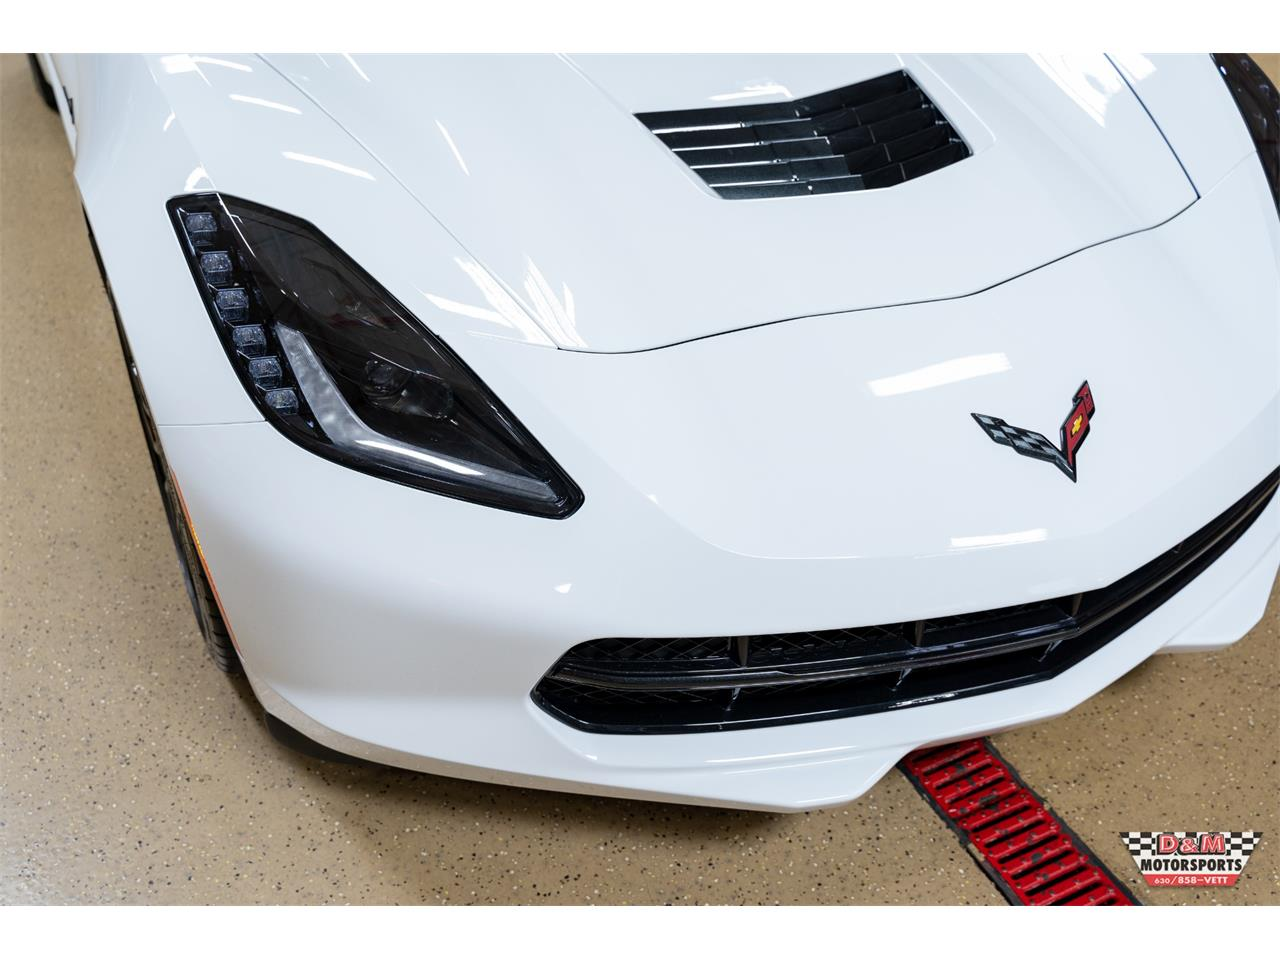 Large Picture of '16 Chevrolet Corvette located in Illinois - $44,995.00 - R2HE